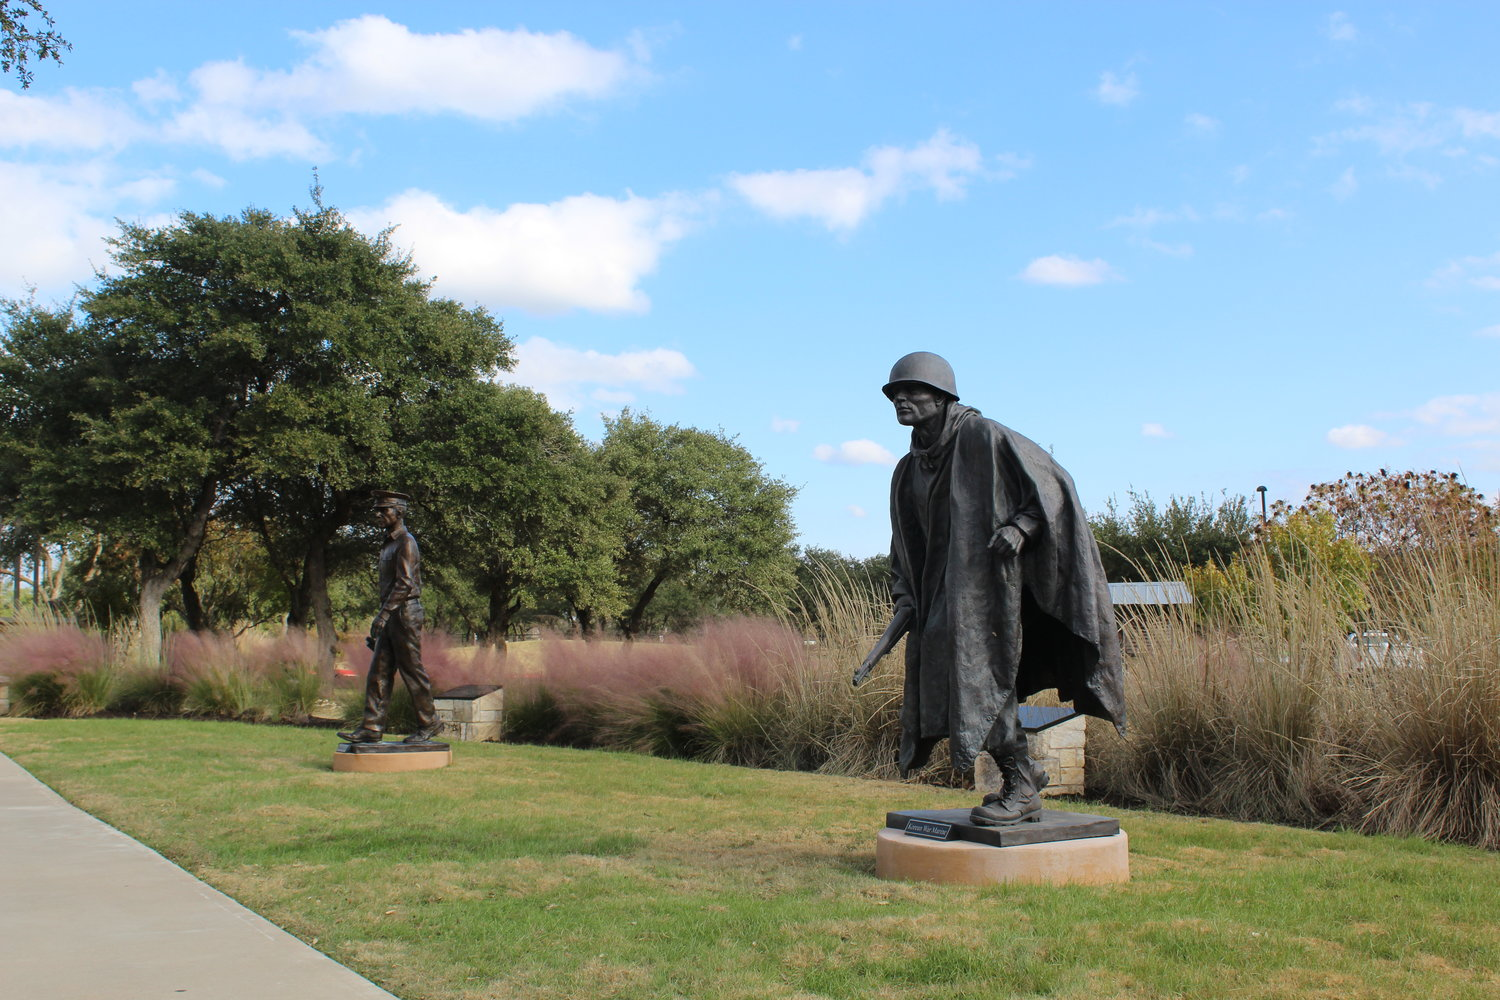 Cedar Park's Veterans Memorial Park currently features three military figures: a World War I soldier (not pictured), a World War II soldier (left) and a Korean War soldier (right).